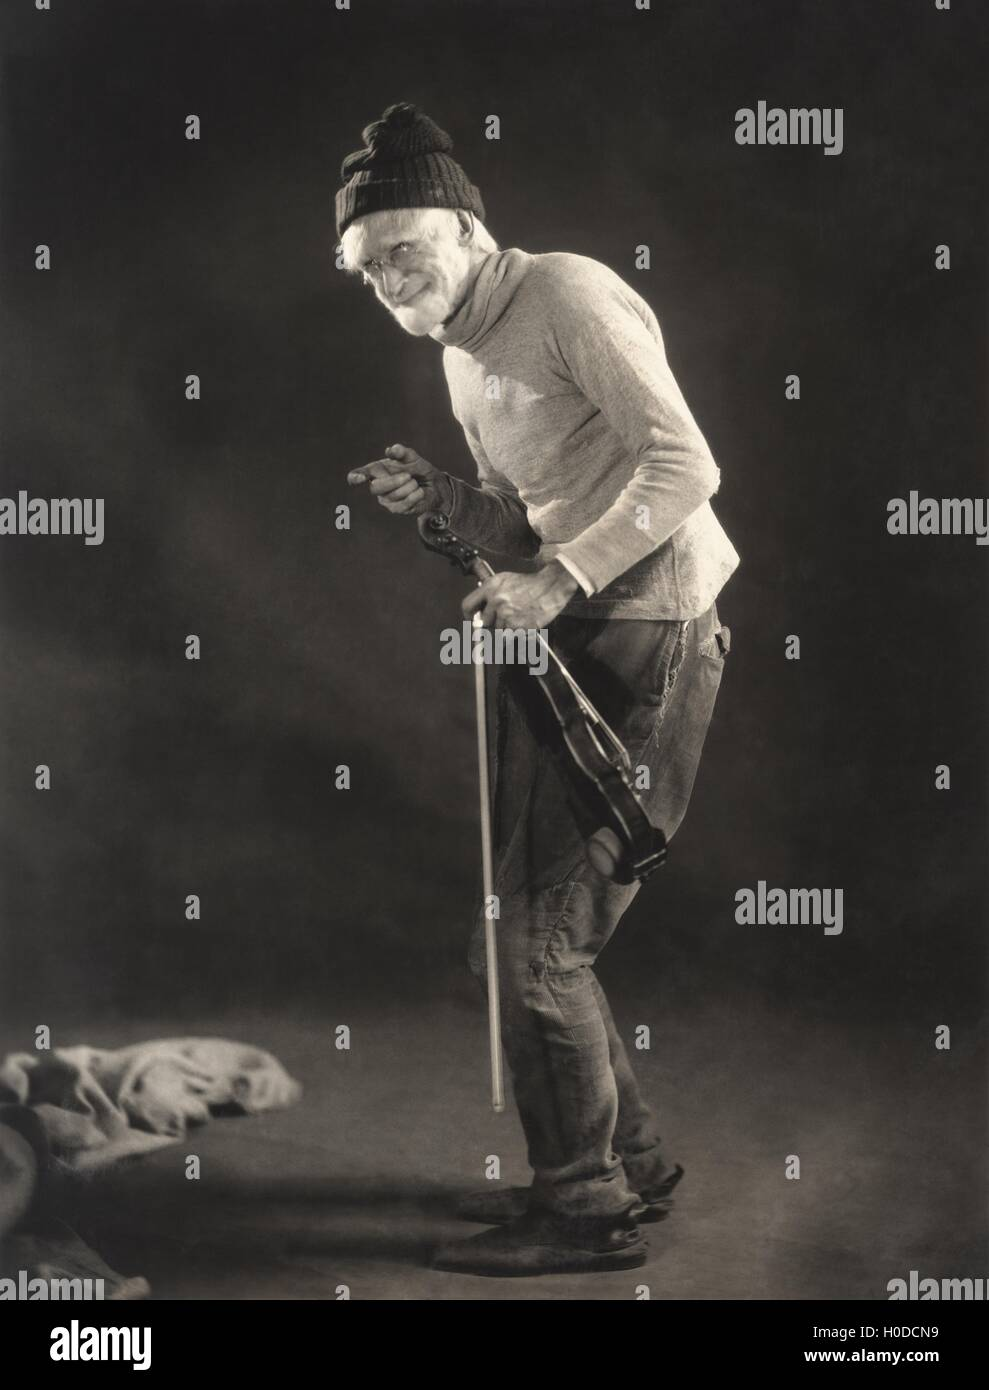 Senior man in woolen cap holding a violin - Stock Image